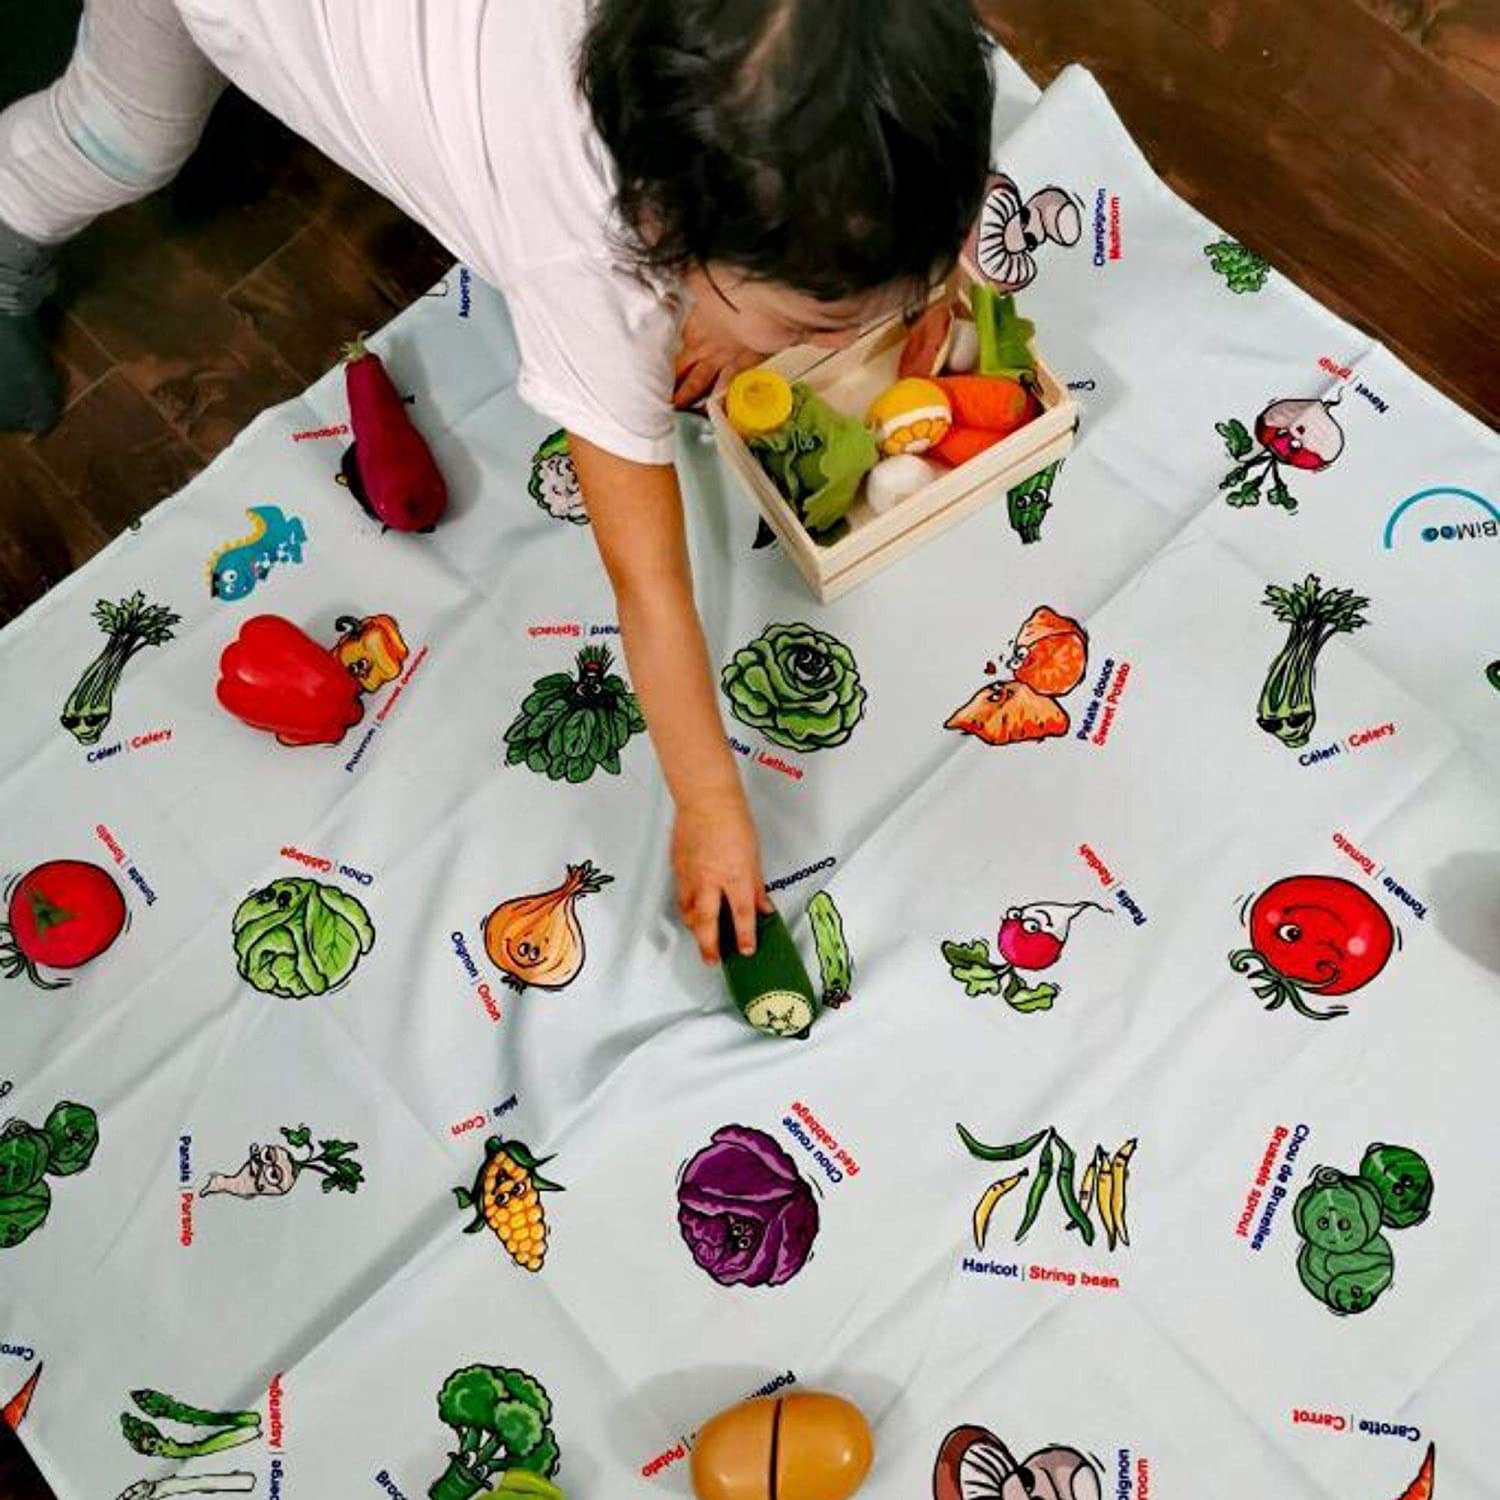 BiMoo VEGETABLES 45x45in Ecological OEKO-TEX Certified Childrens Fun Educative Tablecloth For Kids Learn vegetables in English and French